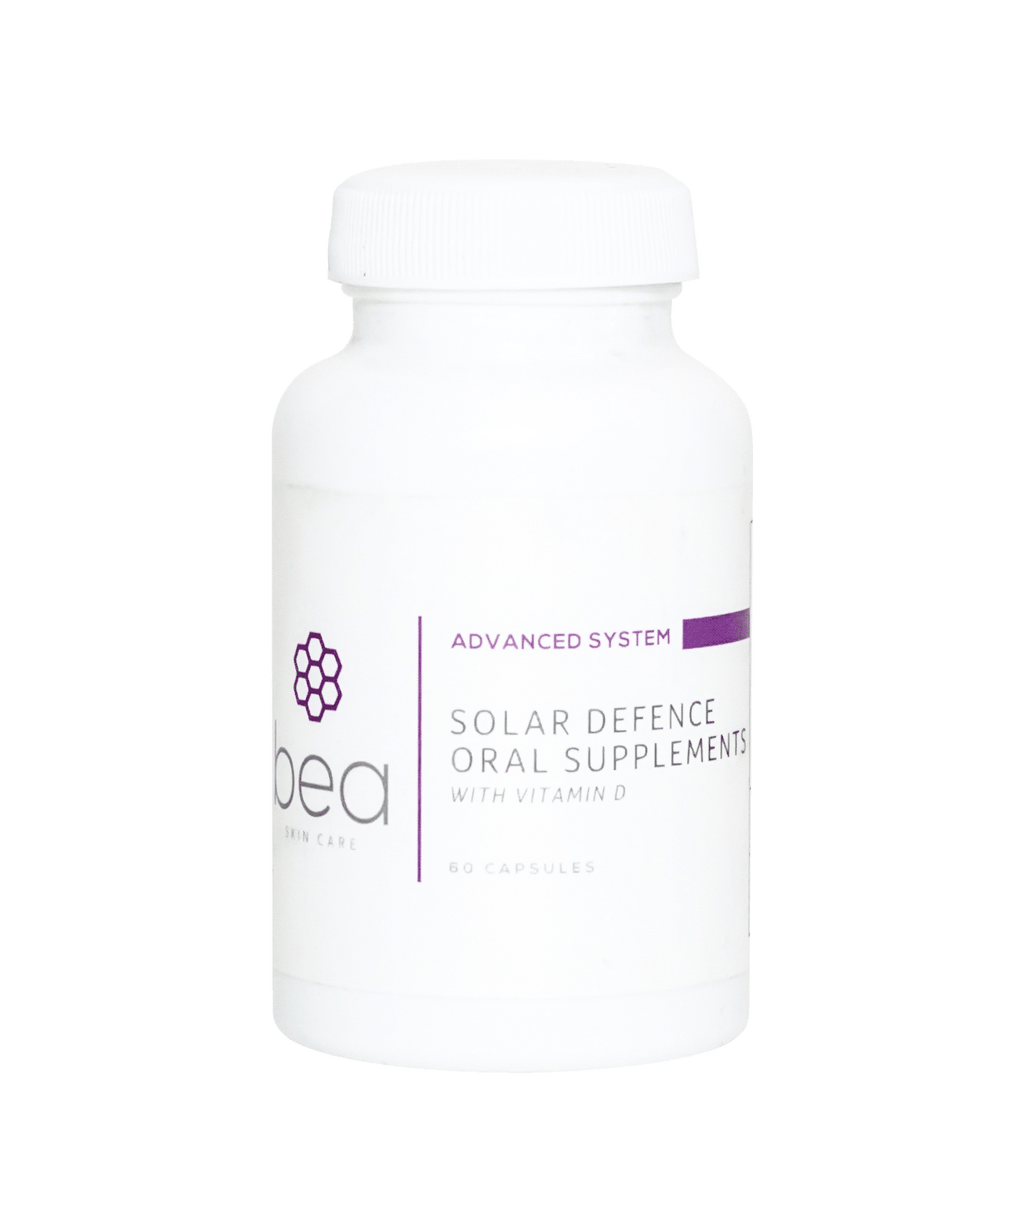 Solar Defence Oral Supplements - 60 Capsules Oral Caps bea Skin Care